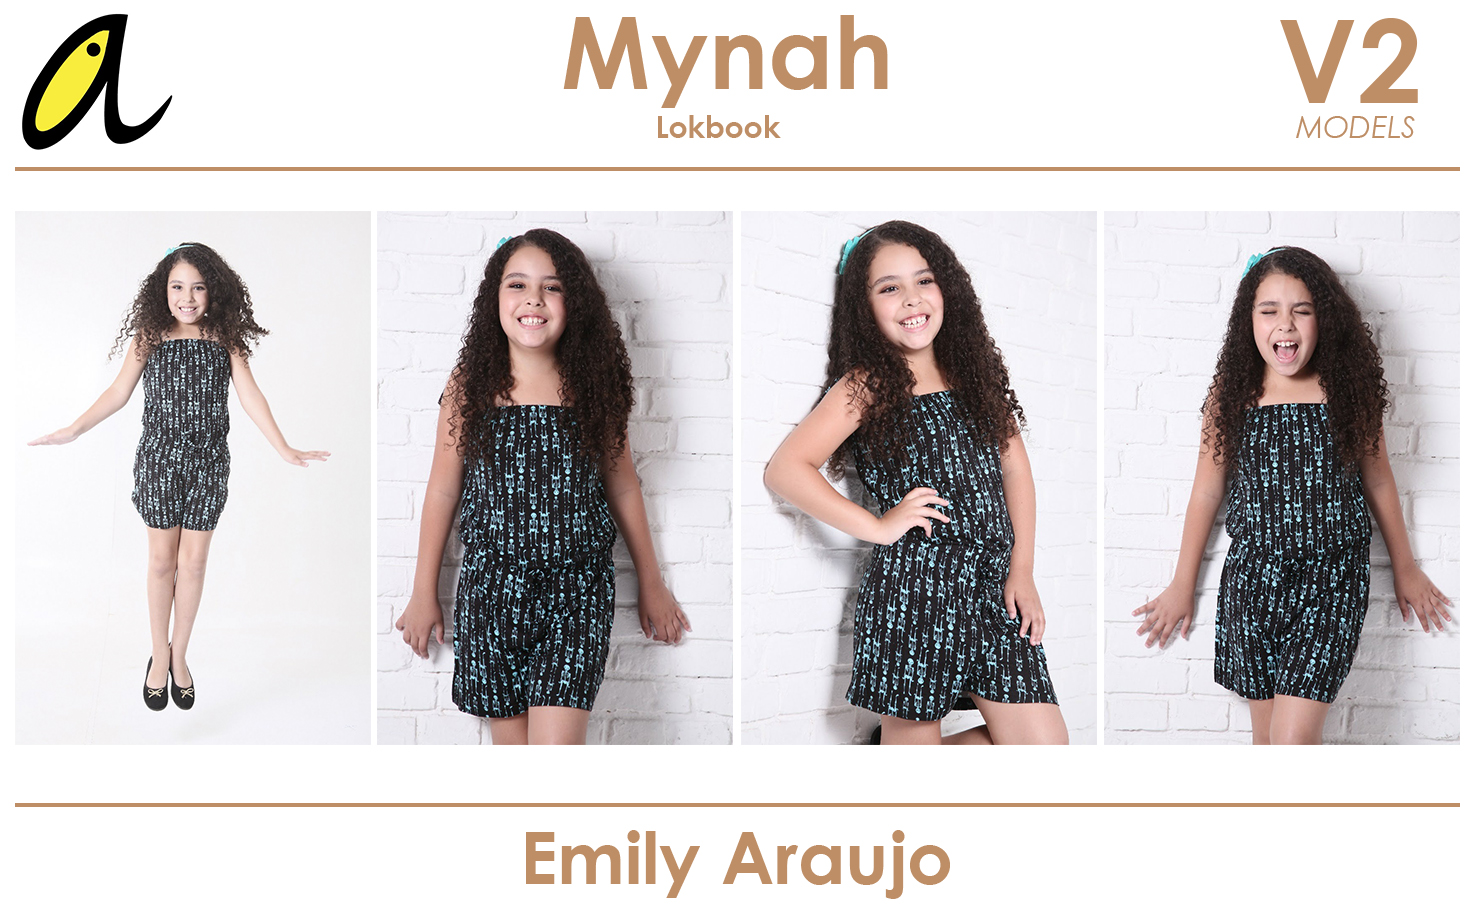 Lookbook Mynah - Emi...